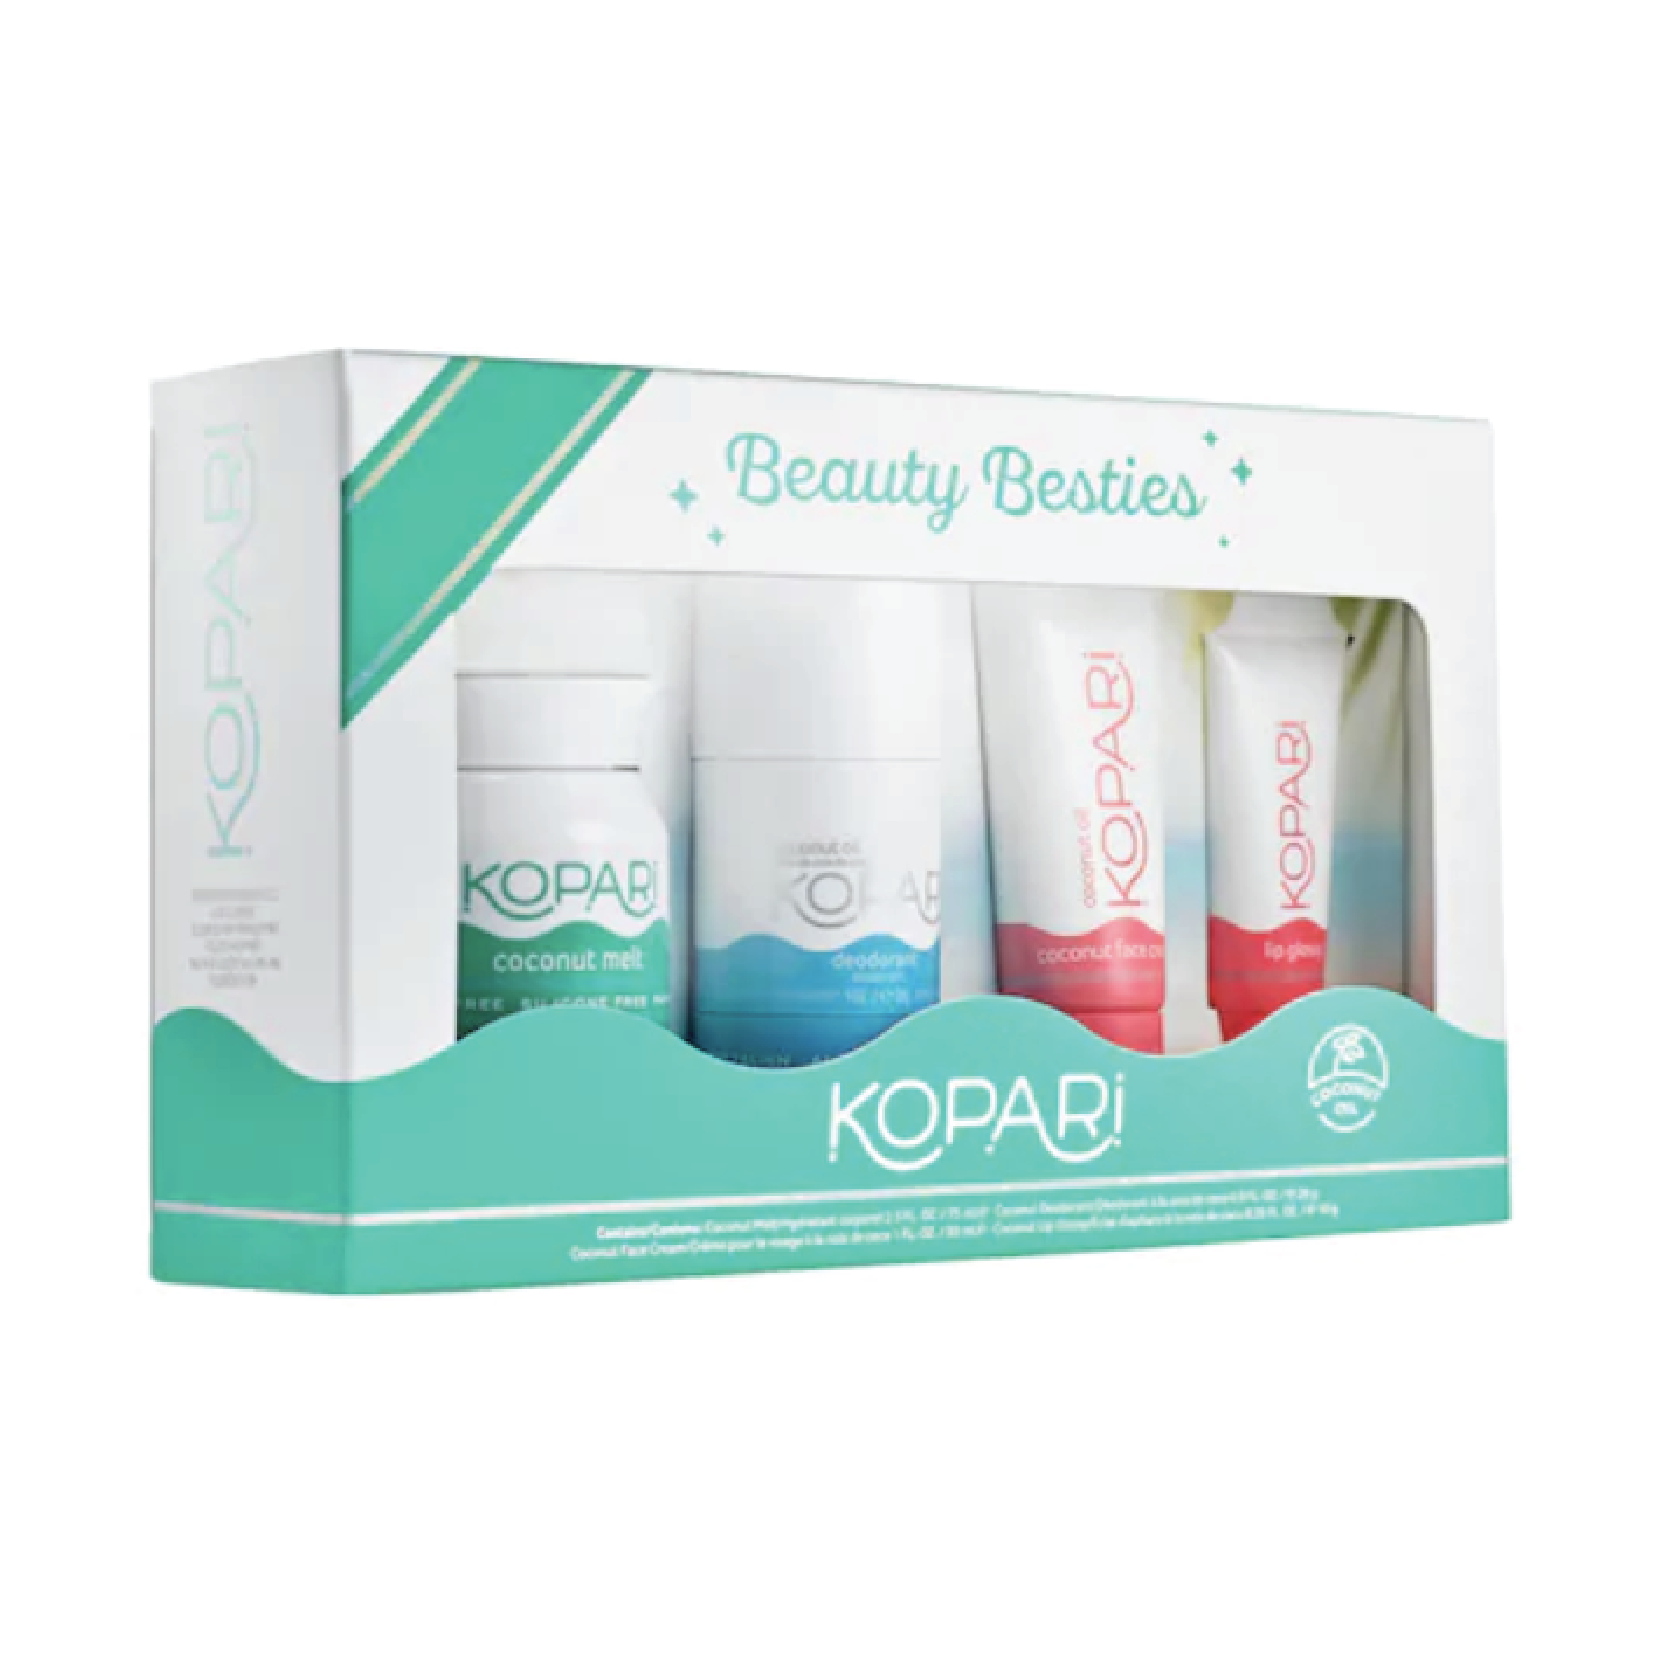 Kopari Beauty Besties Kit - $40 at SephoraKnow someone obsessed with coconut oil? This brand has completely clean ingredients that provide extreme moisture. I'm a personal fan of their Coconut Melt and love this brand as a whole.